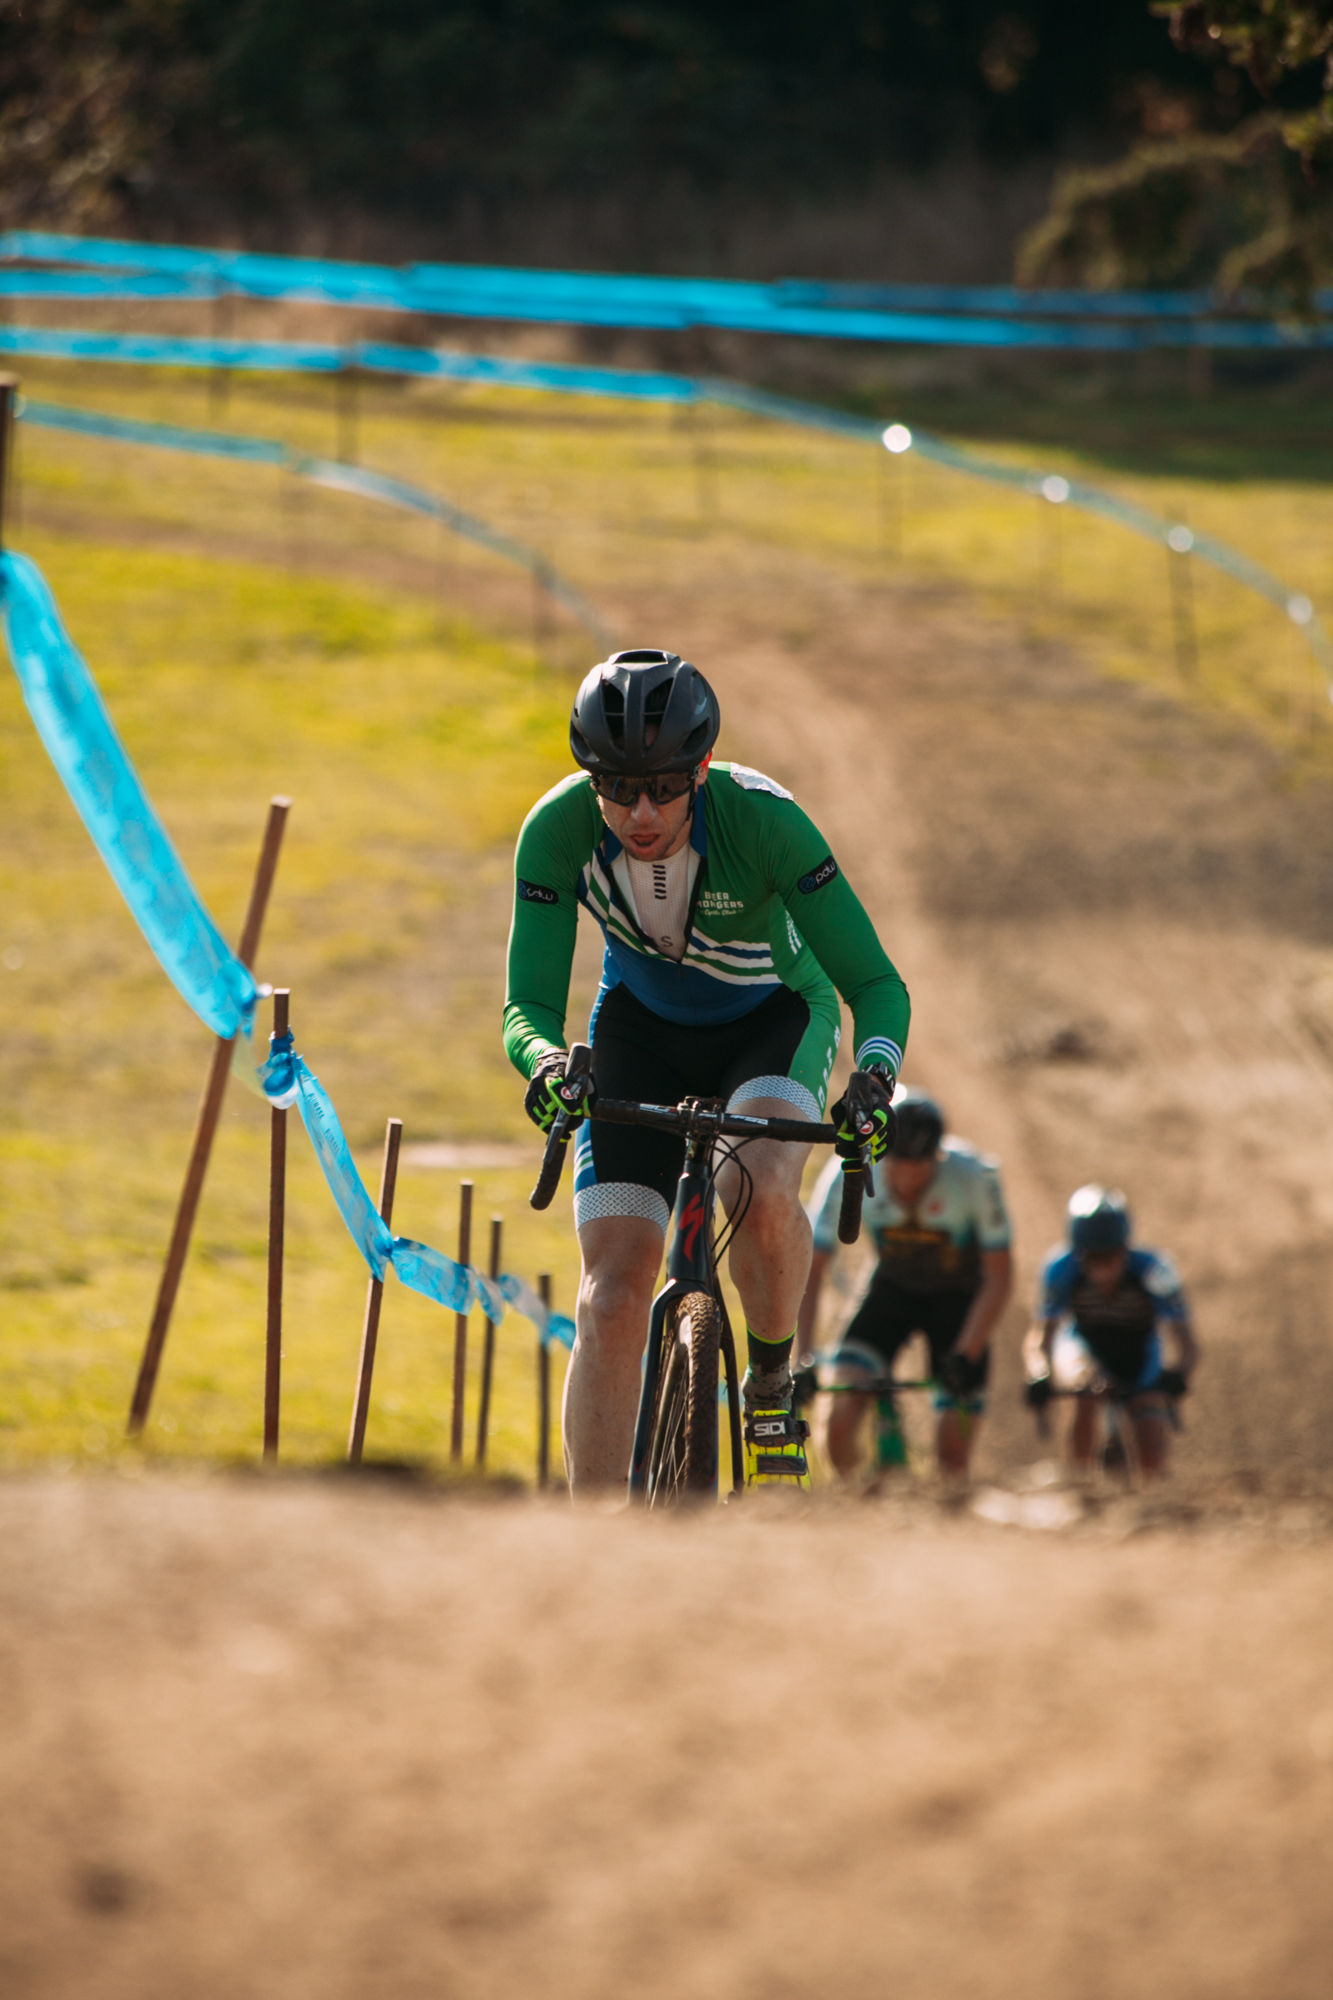 Cyclocross18_CCCX_RainierHS-200-mettlecycling.jpg